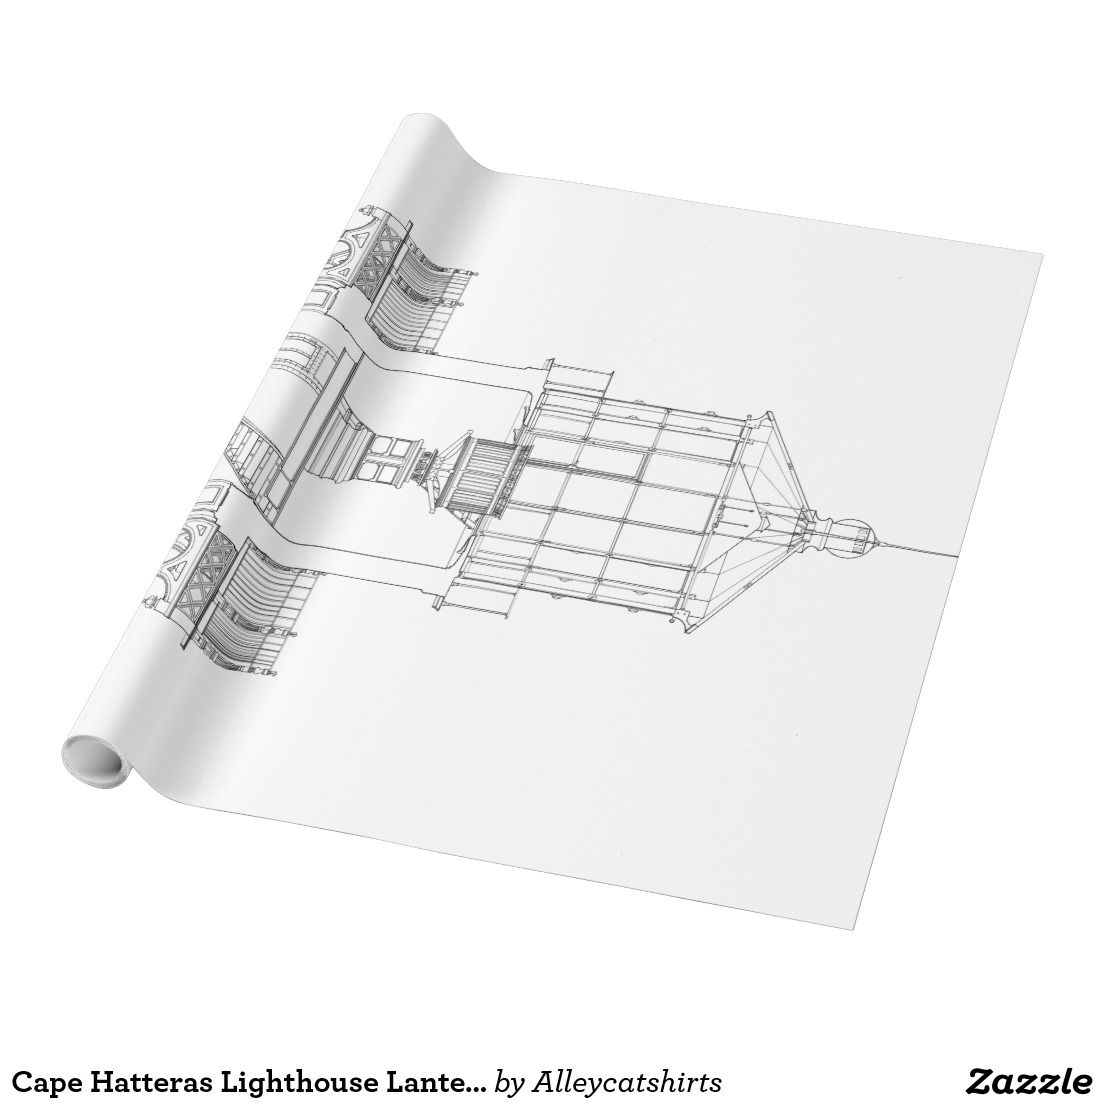 Cape hatteras lighthouse lantern room blueprint wrapping paper cape hatteras lighthouse lantern room blueprint wrapping paper malvernweather Image collections